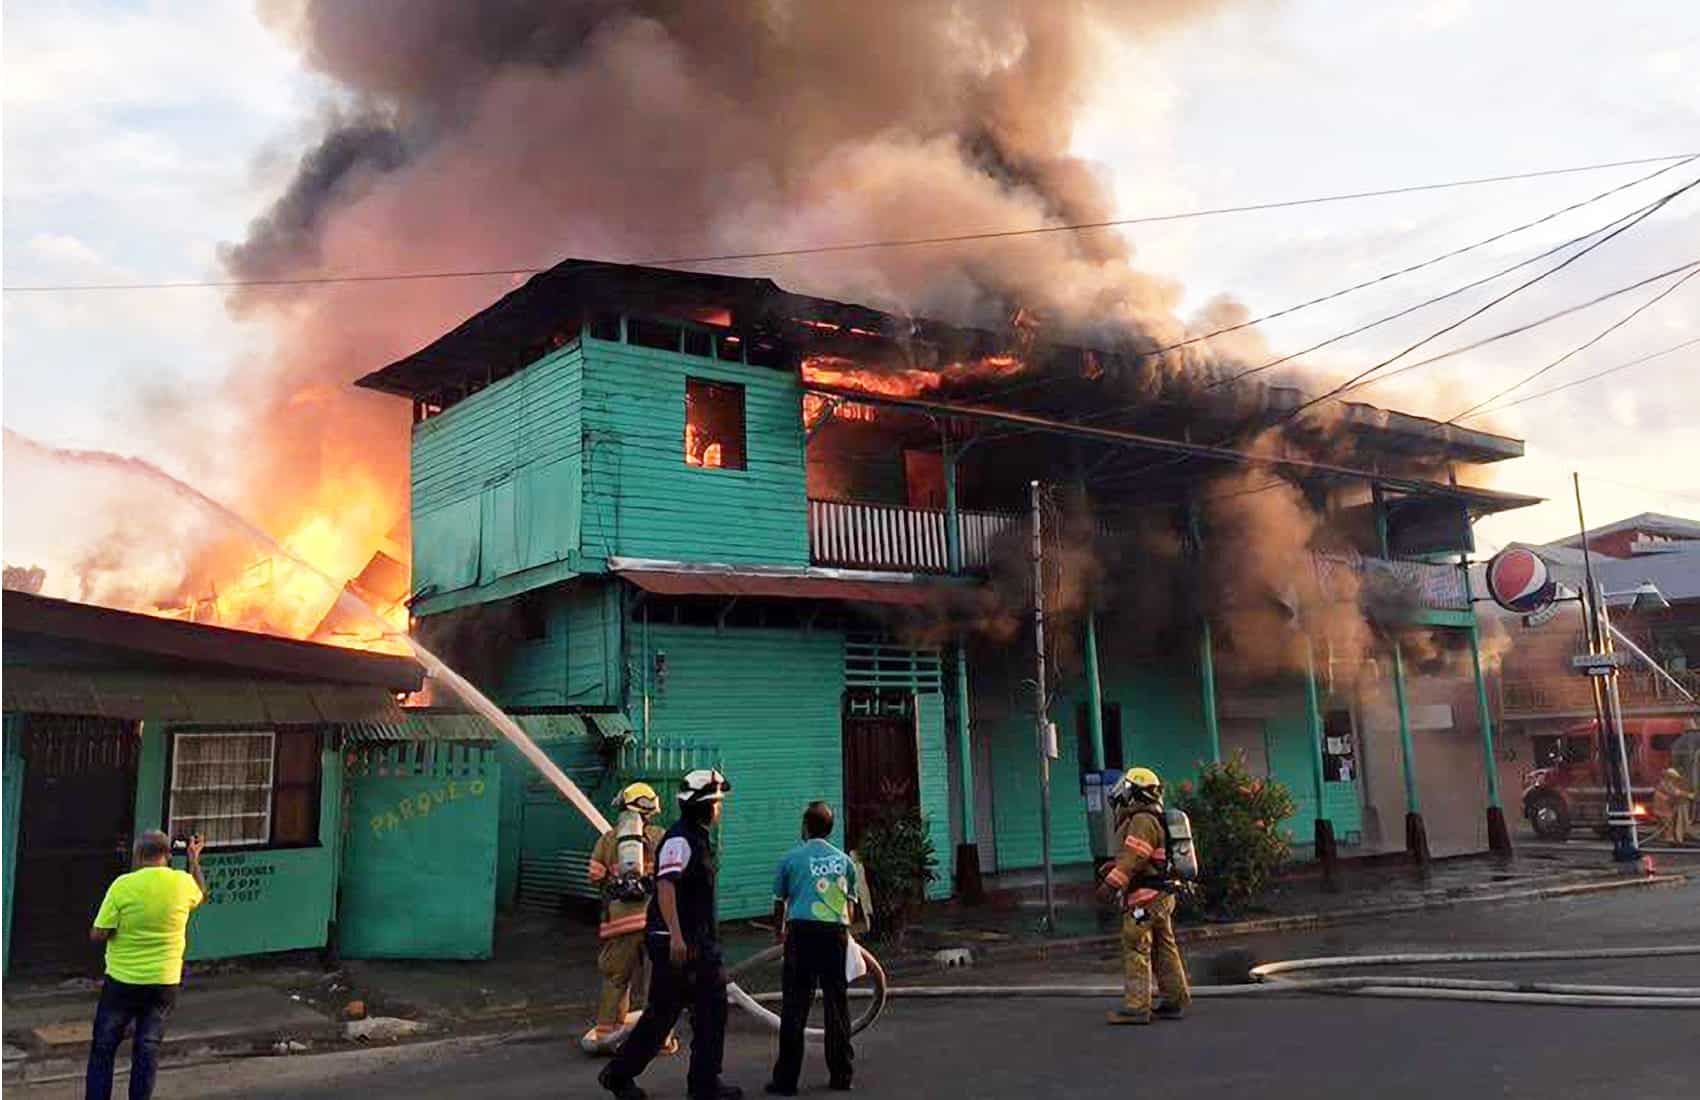 Fire at the Black Star Line building. April 29, 2016